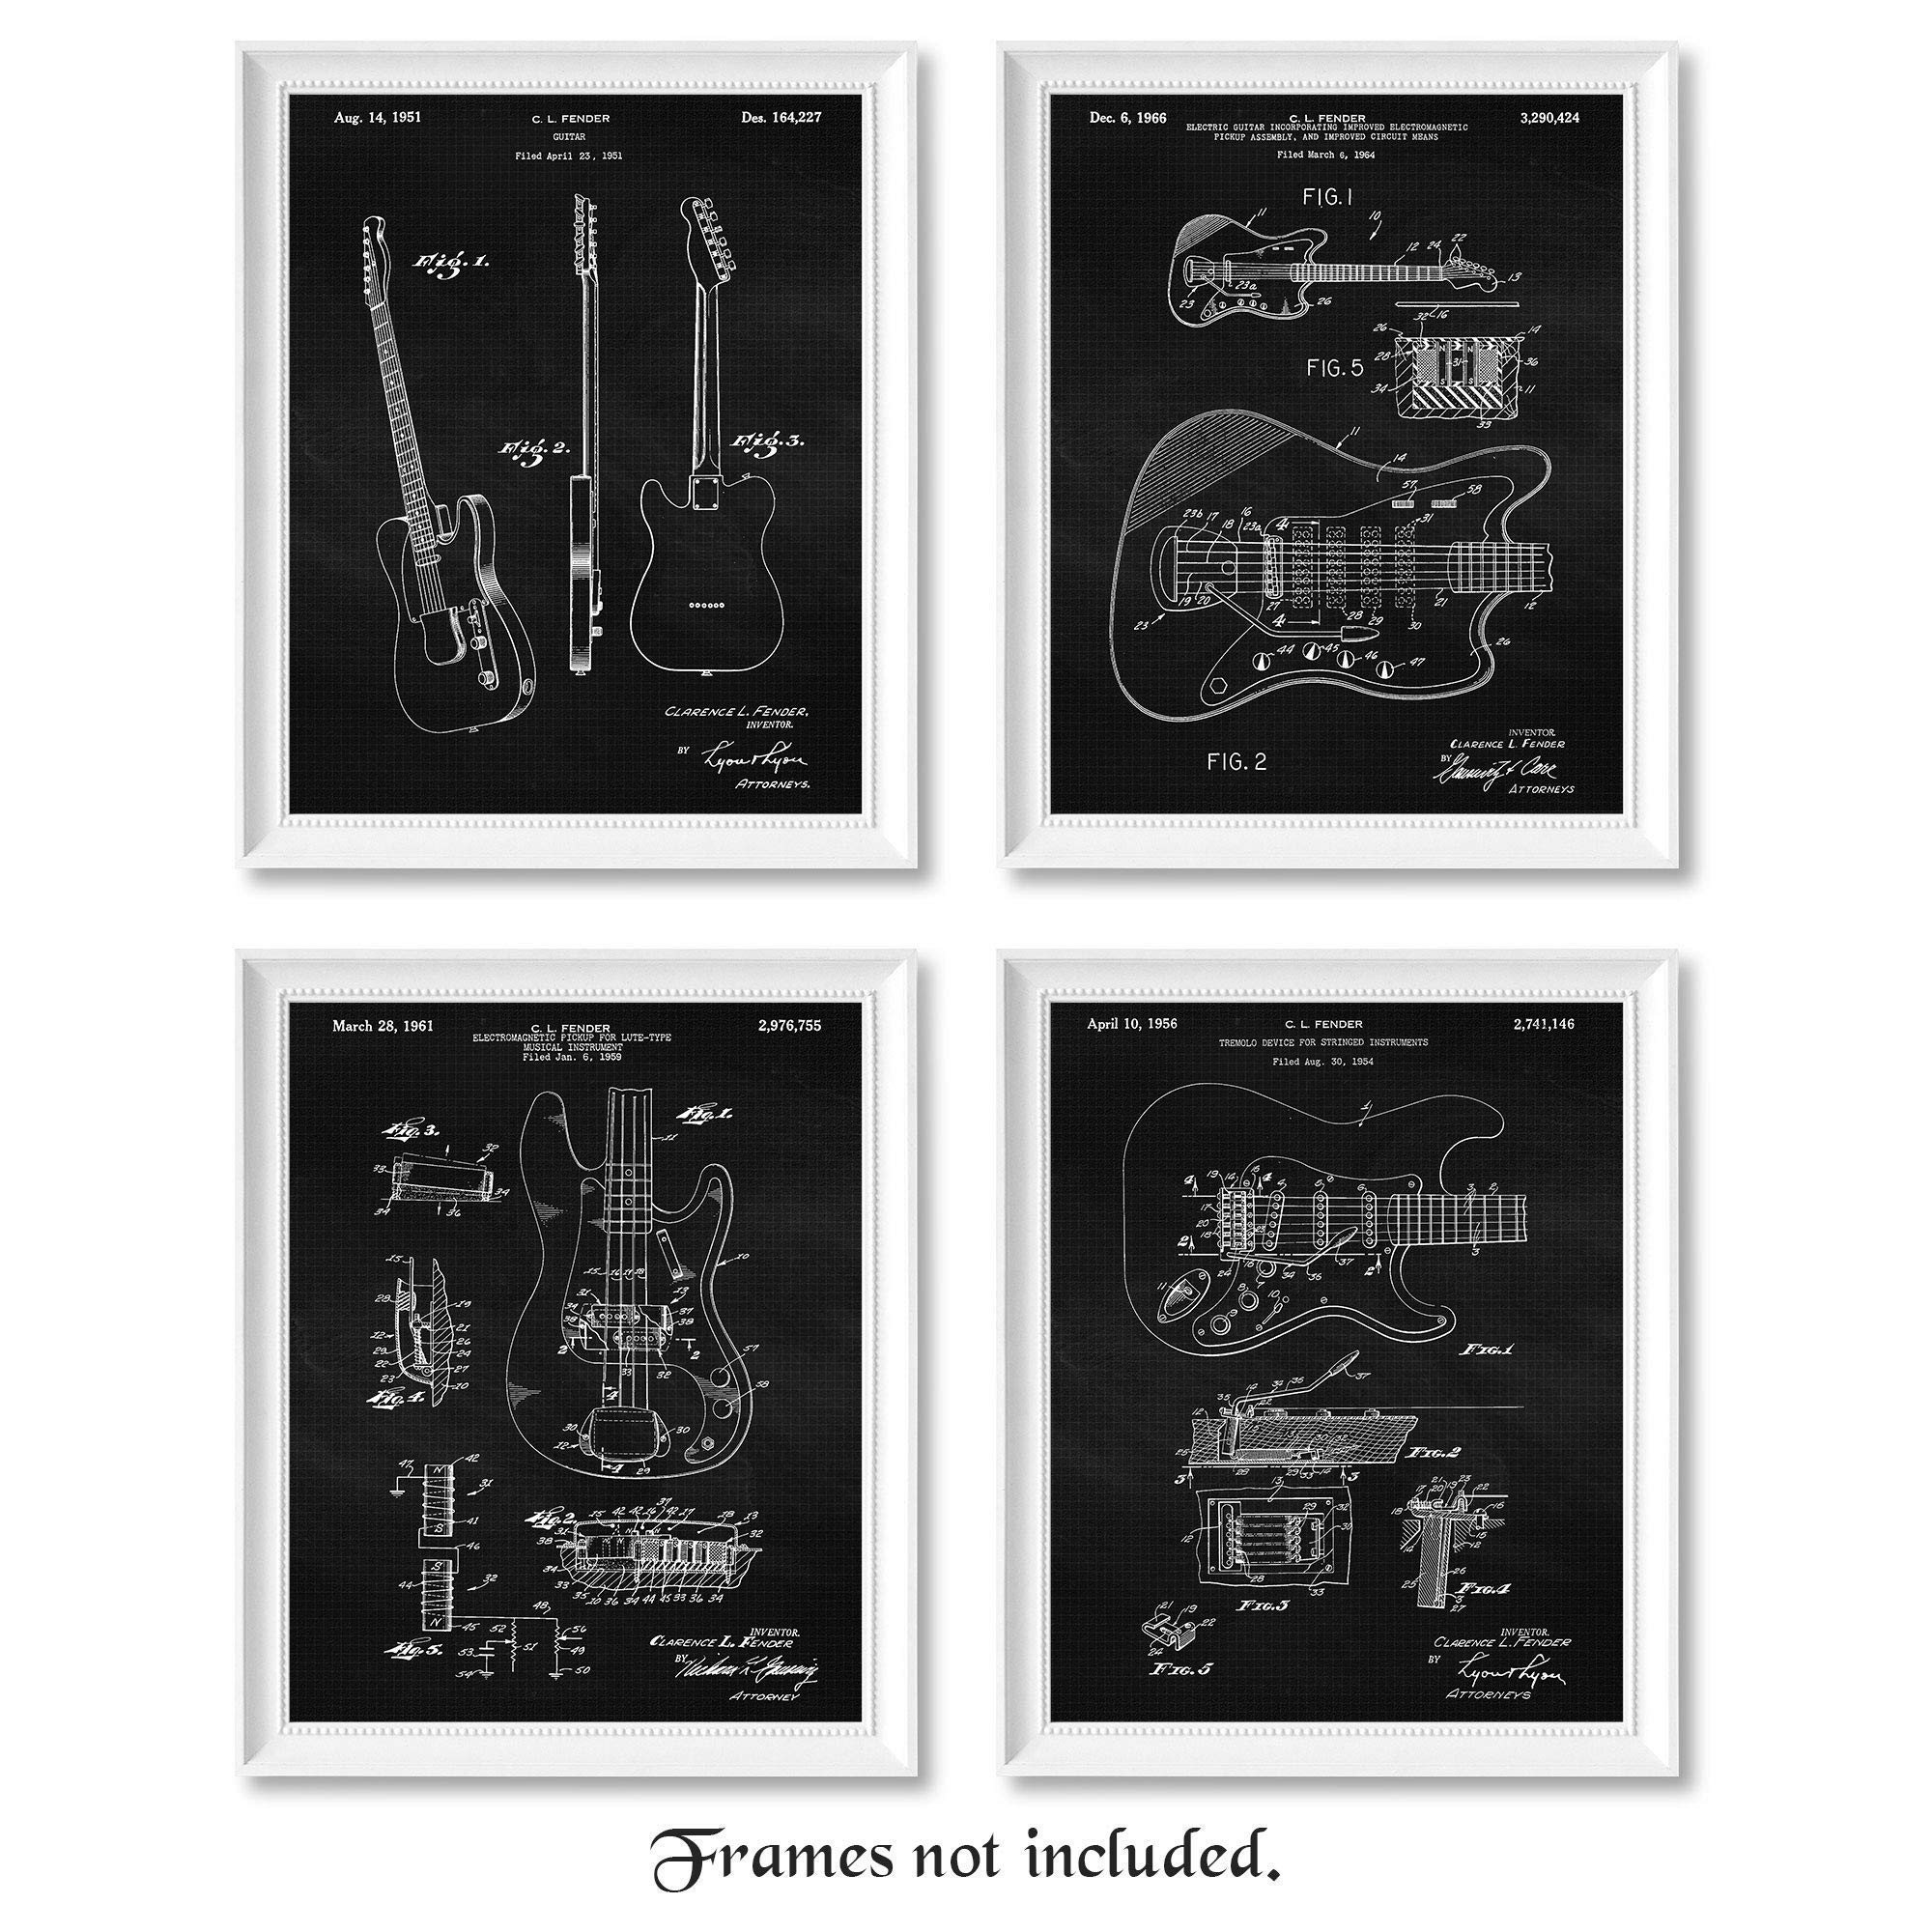 Original Fender Guitar Patent Poster Prints, Set of 4 (8x10) Unframed Photos, Wall Art Decor Gifts Under 20 for Home, Office, Man Cave, Teacher, Musician, College Student, Band, Rock & Roll Fan by Stars by Nature